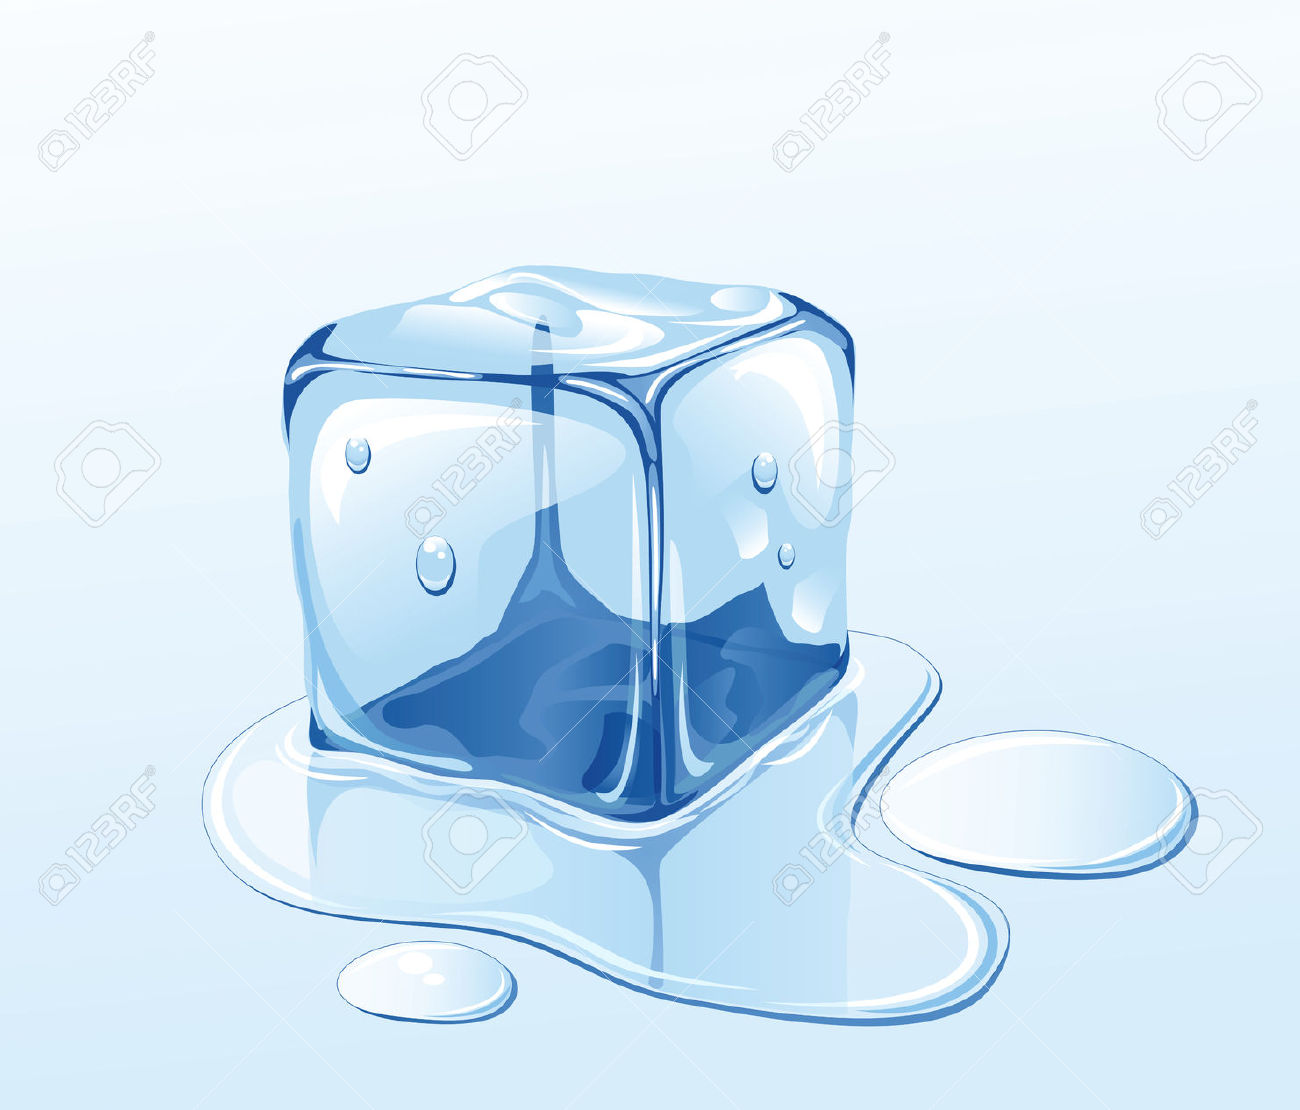 Water solid clipart.